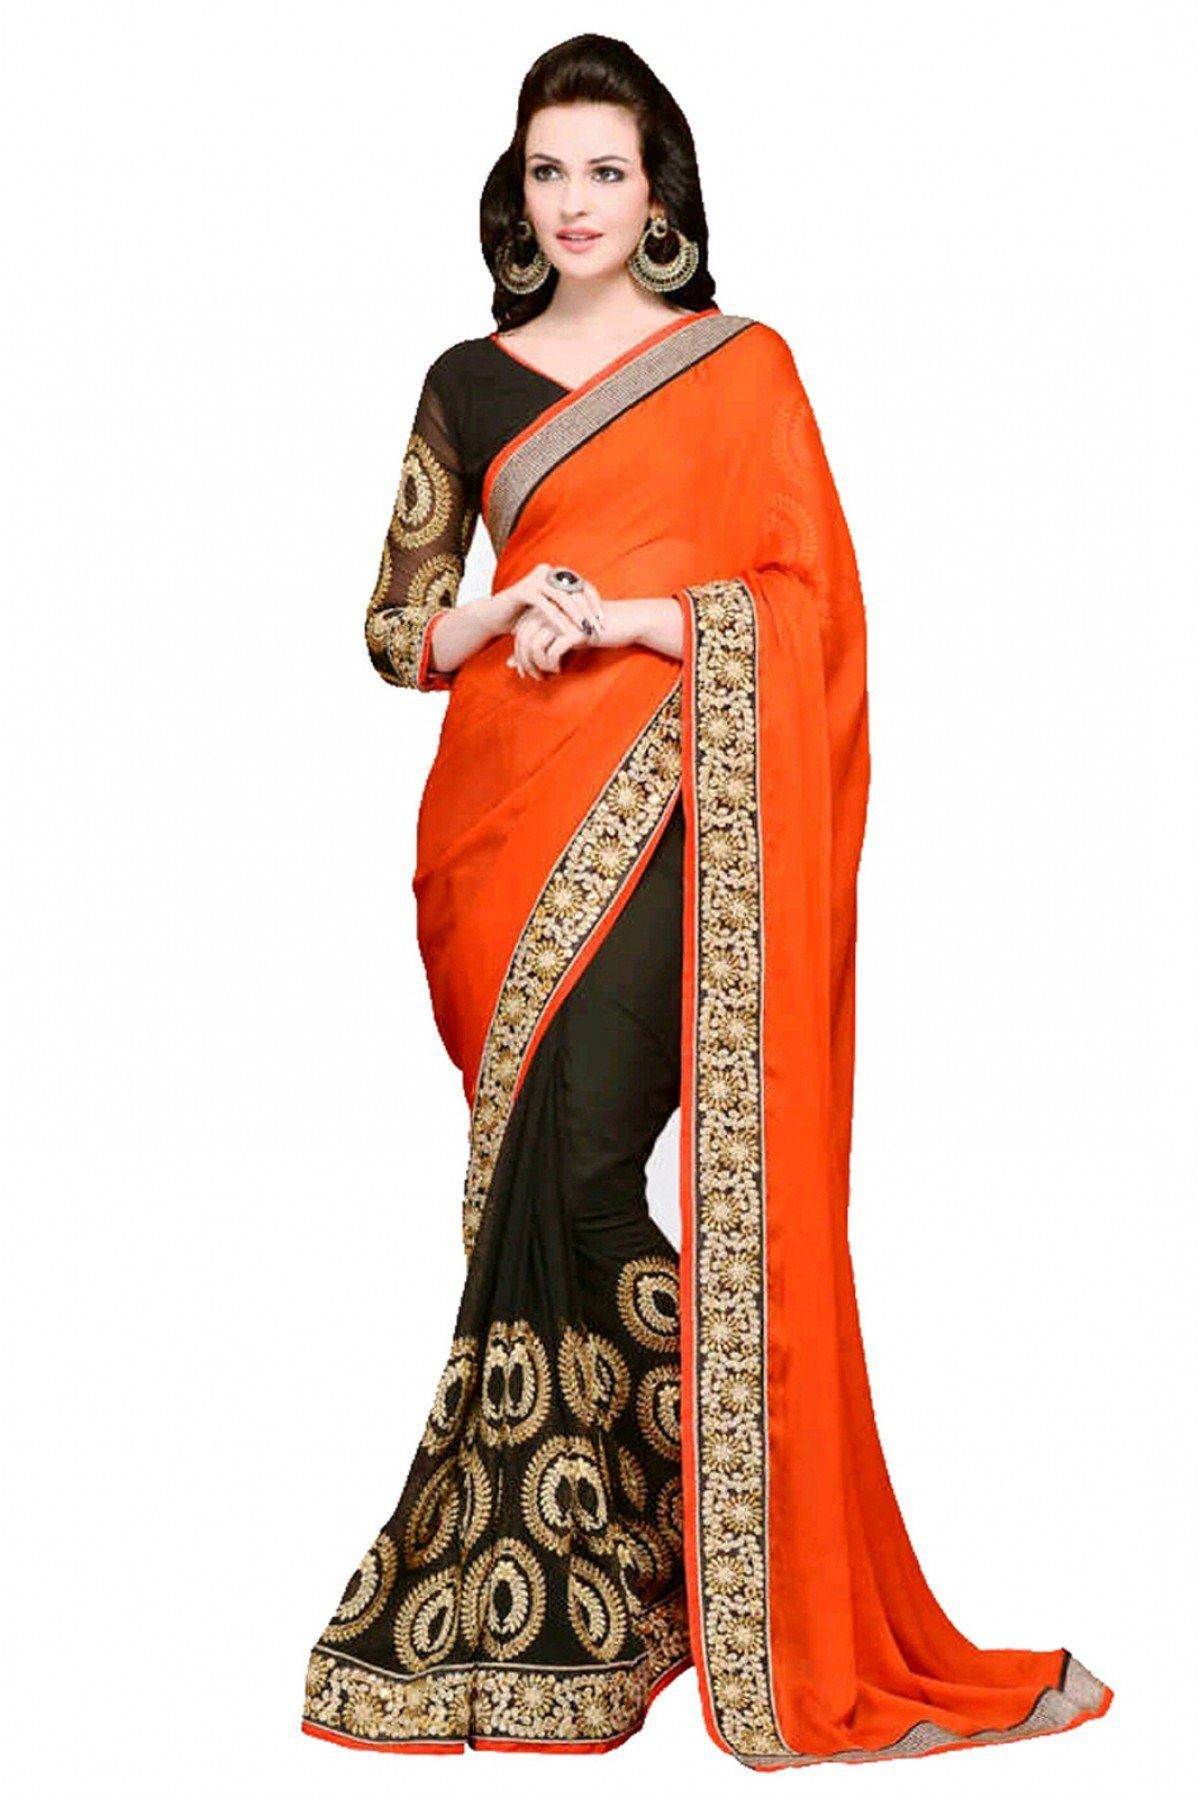 5f053b3012ab56 Georgette Party Wear Designer Saree in Orange and Black Colour.It comes  with matching Raw Silk Blouse.It is crafted with Embroidery